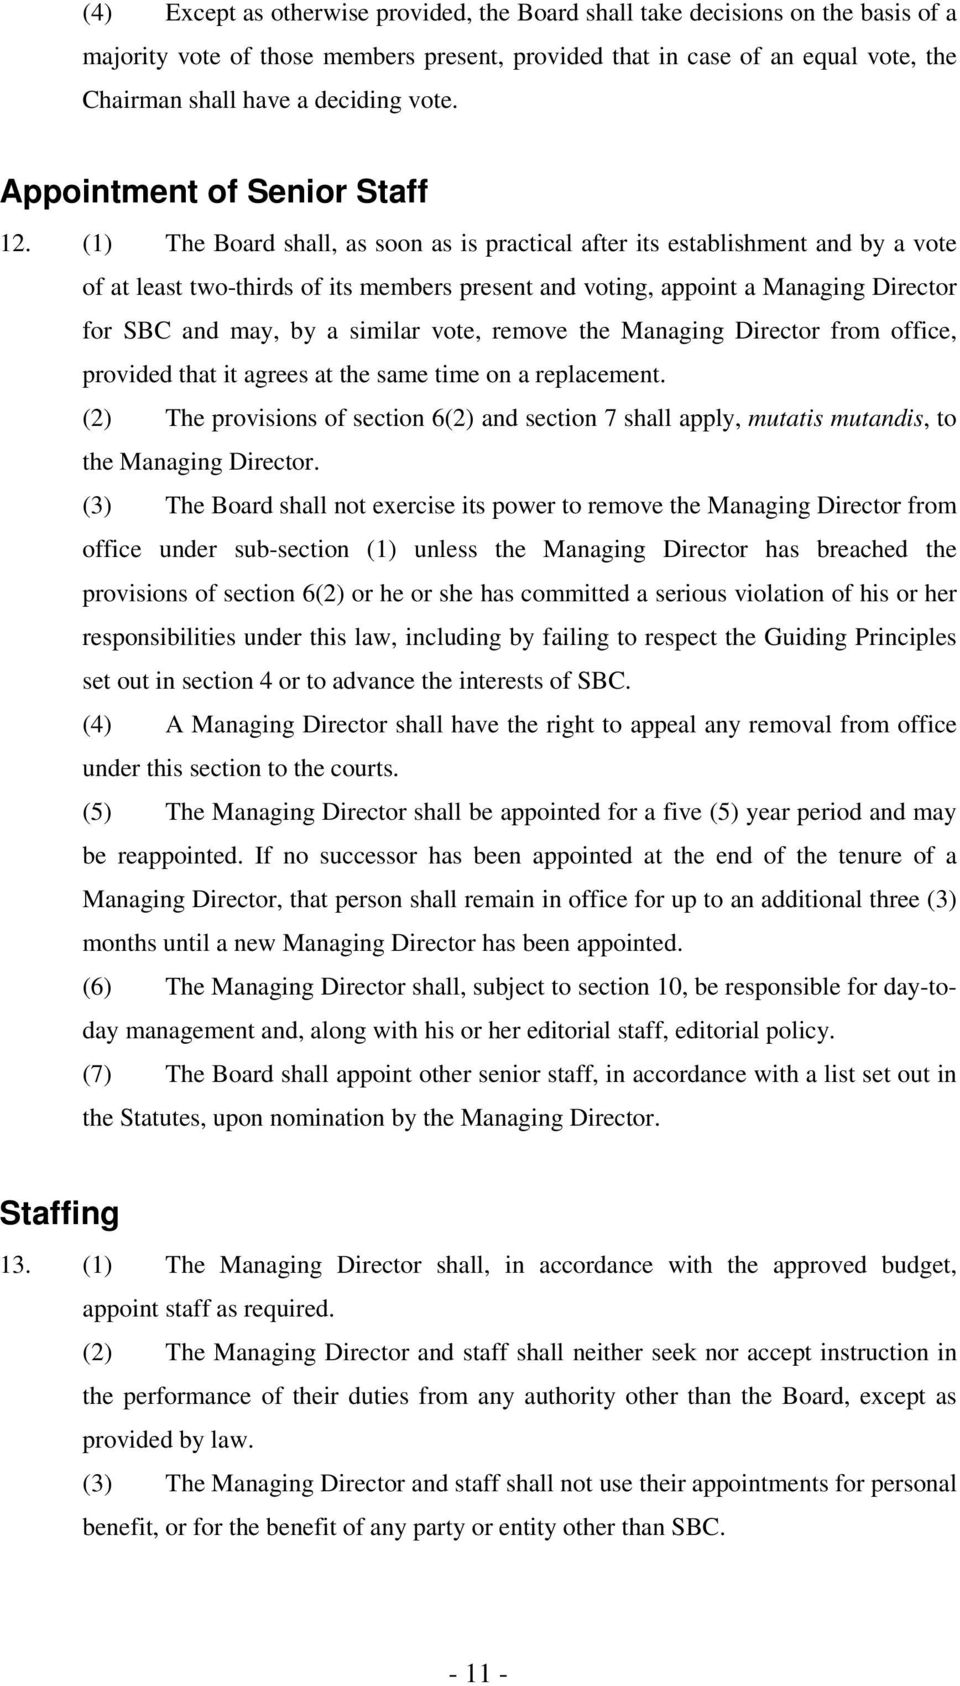 (1) The Board shall, as soon as is practical after its establishment and by a vote of at least two-thirds of its members present and voting, appoint a Managing Director for SBC and may, by a similar